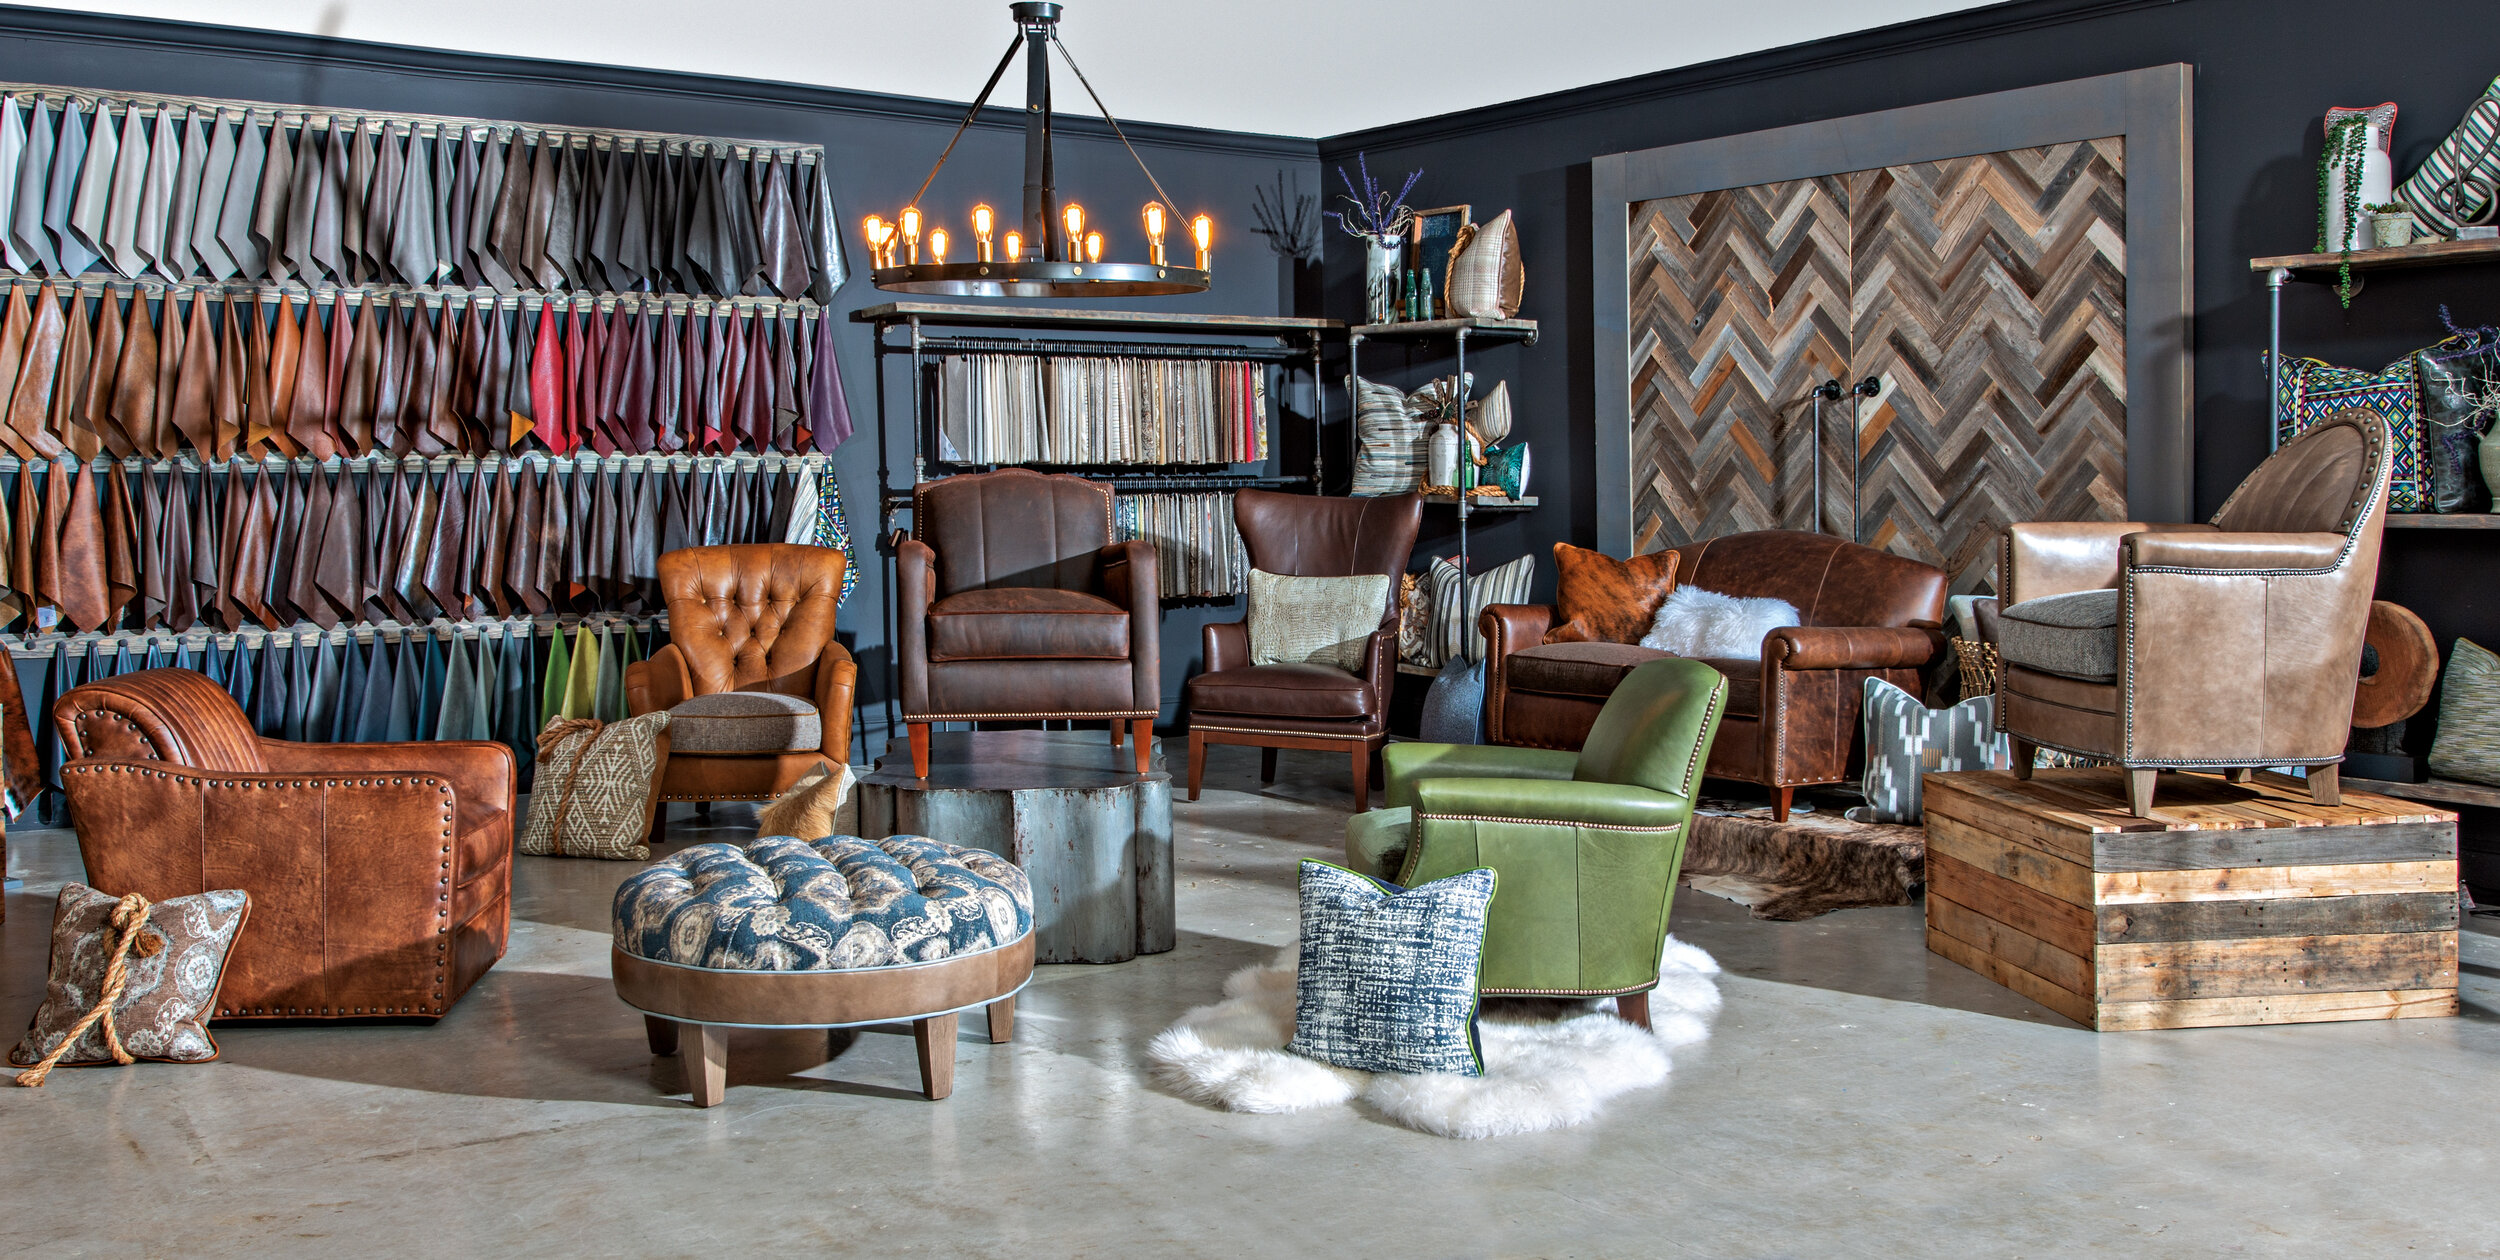 Leather Furniture S In Tucson, Bakers Furniture Tucson